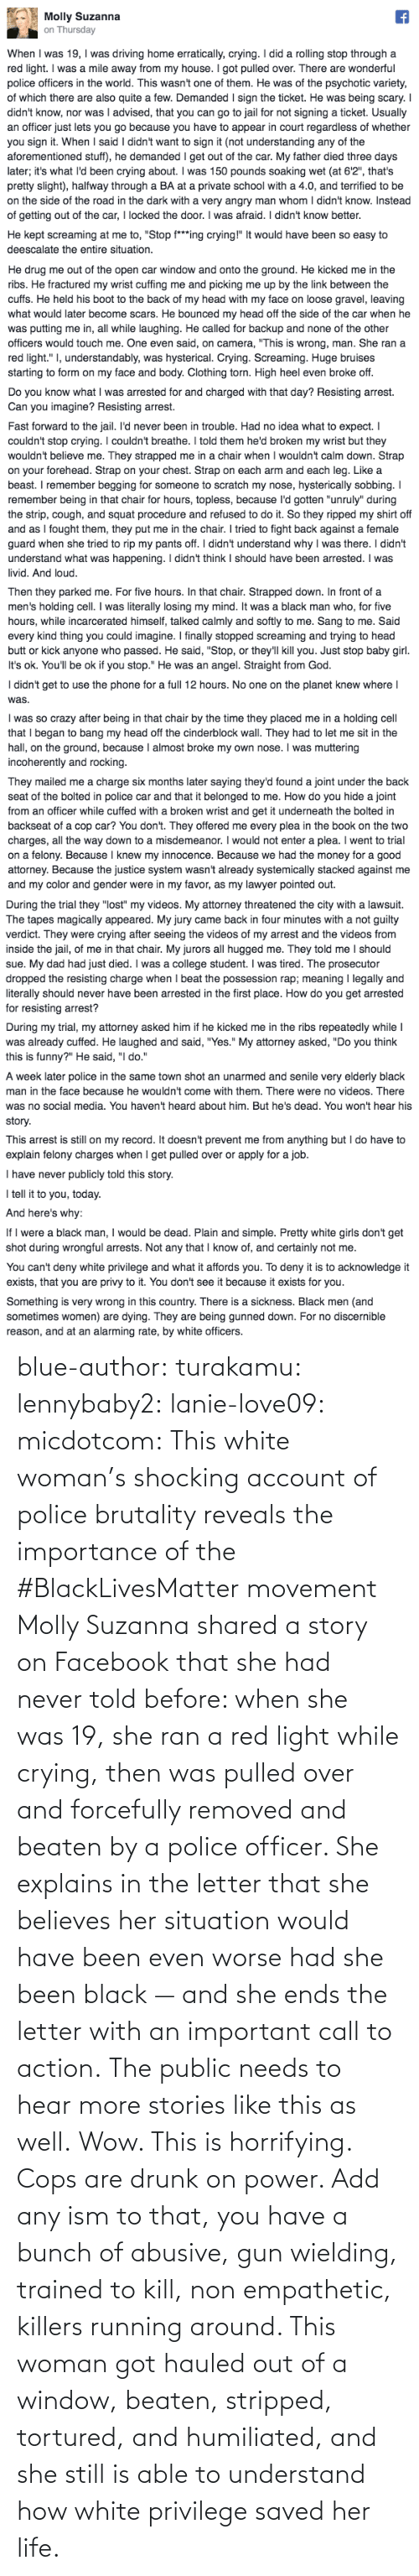 Facebook: blue-author: turakamu:  lennybaby2:  lanie-love09:  micdotcom:  This white woman's shocking account of police brutality reveals the importance of the #BlackLivesMatter movement Molly Suzanna shared a story on Facebook that she had never told before: when she was 19, she ran a red light while crying, then was pulled over and forcefully removed and beaten by a police officer. She explains in the letter that she believes her situation would have been even worse had she been black — and she ends the letter with an important call to action.  The public needs to hear more stories like this as well.  Wow. This is horrifying.  Cops are drunk on power. Add any ism to that, you have a bunch of abusive, gun wielding, trained to kill, non empathetic, killers running around.    This woman got hauled out of a window, beaten, stripped, tortured, and humiliated, and she still is able to understand how white privilege saved her life.